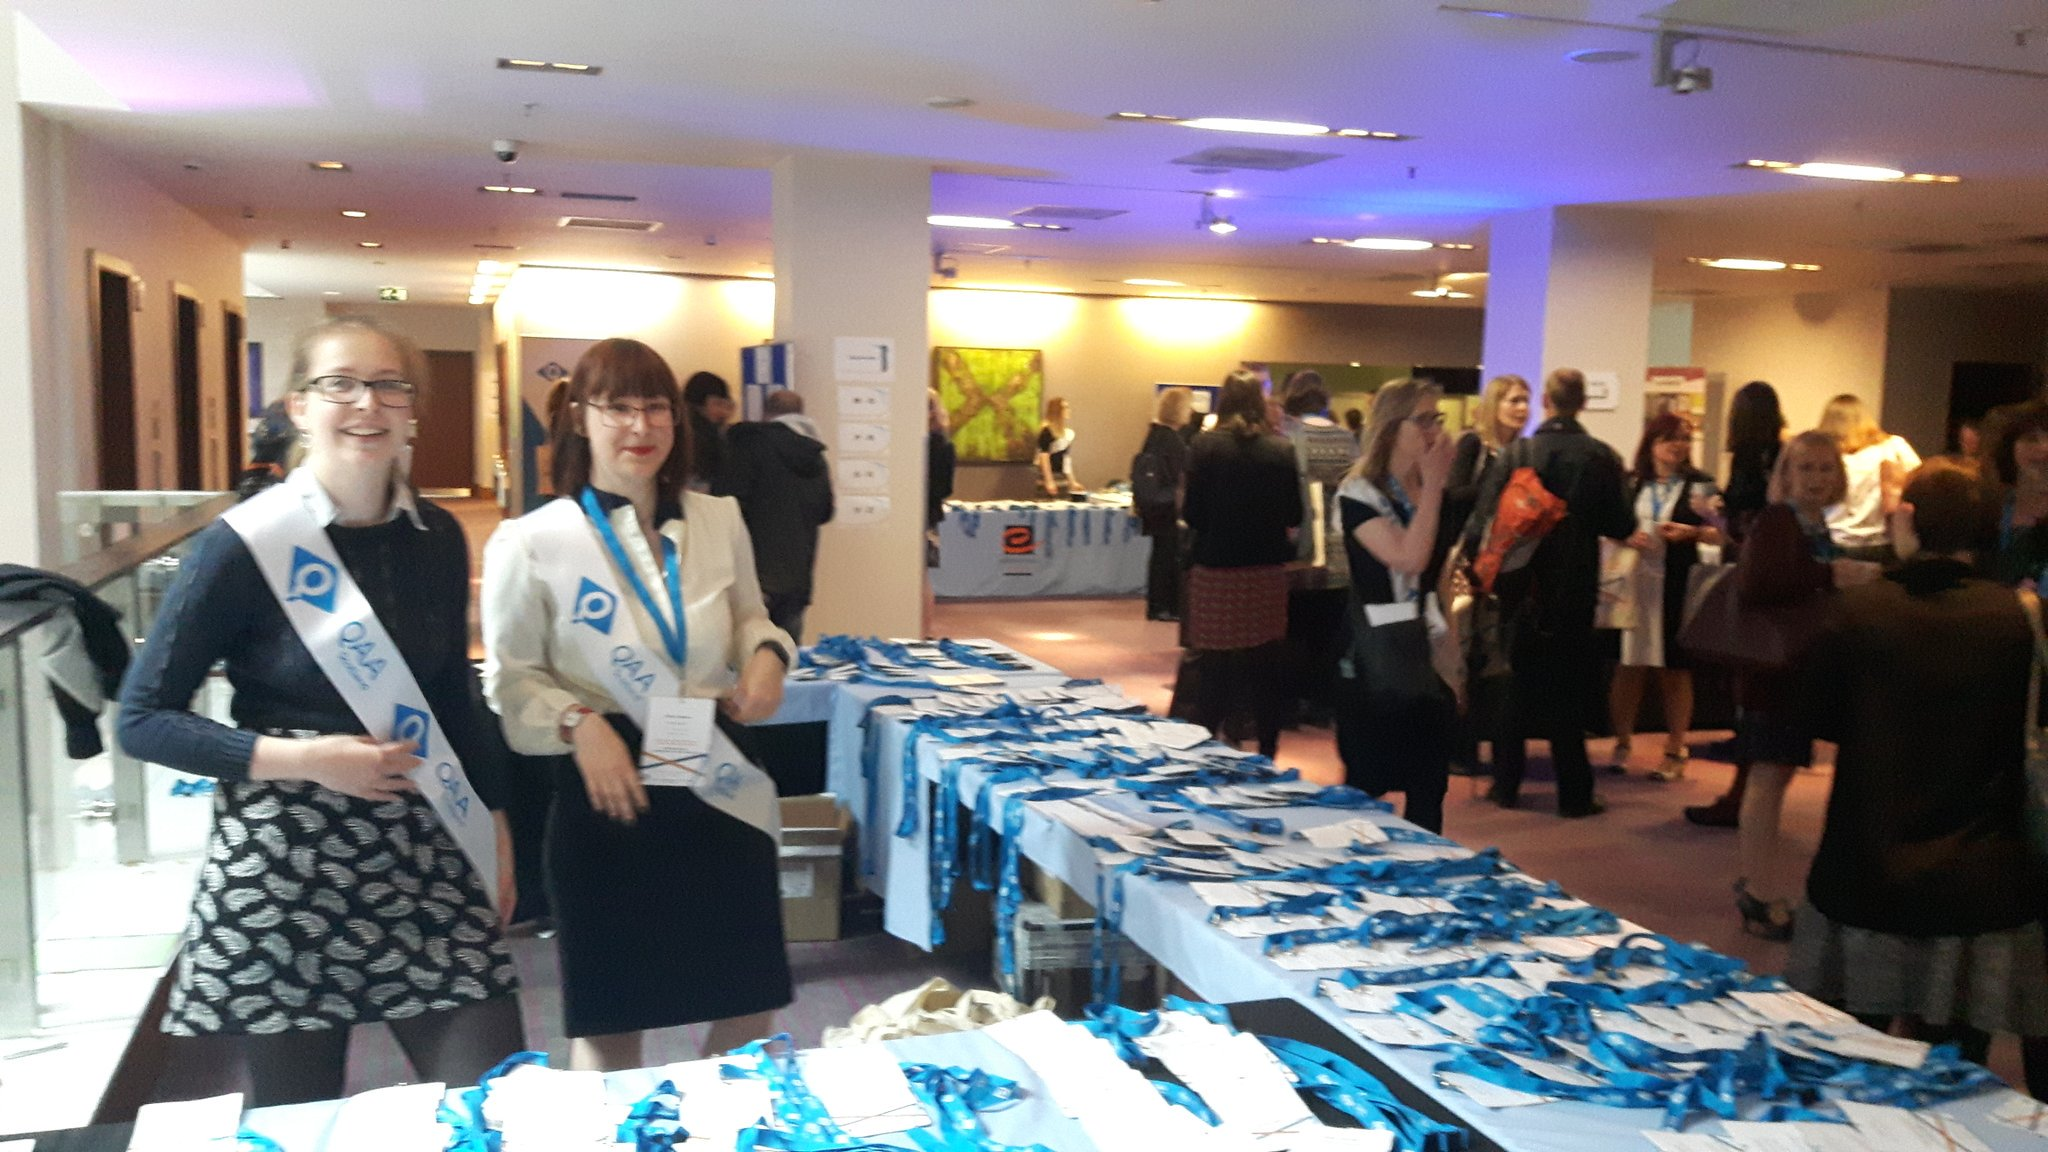 And we're off! @EmTodorova manning the @THEMEStweets @QAAScotland registration. Looking forward to a busy and stimulating day. #ETconf17 https://t.co/doQ3OnBrIF